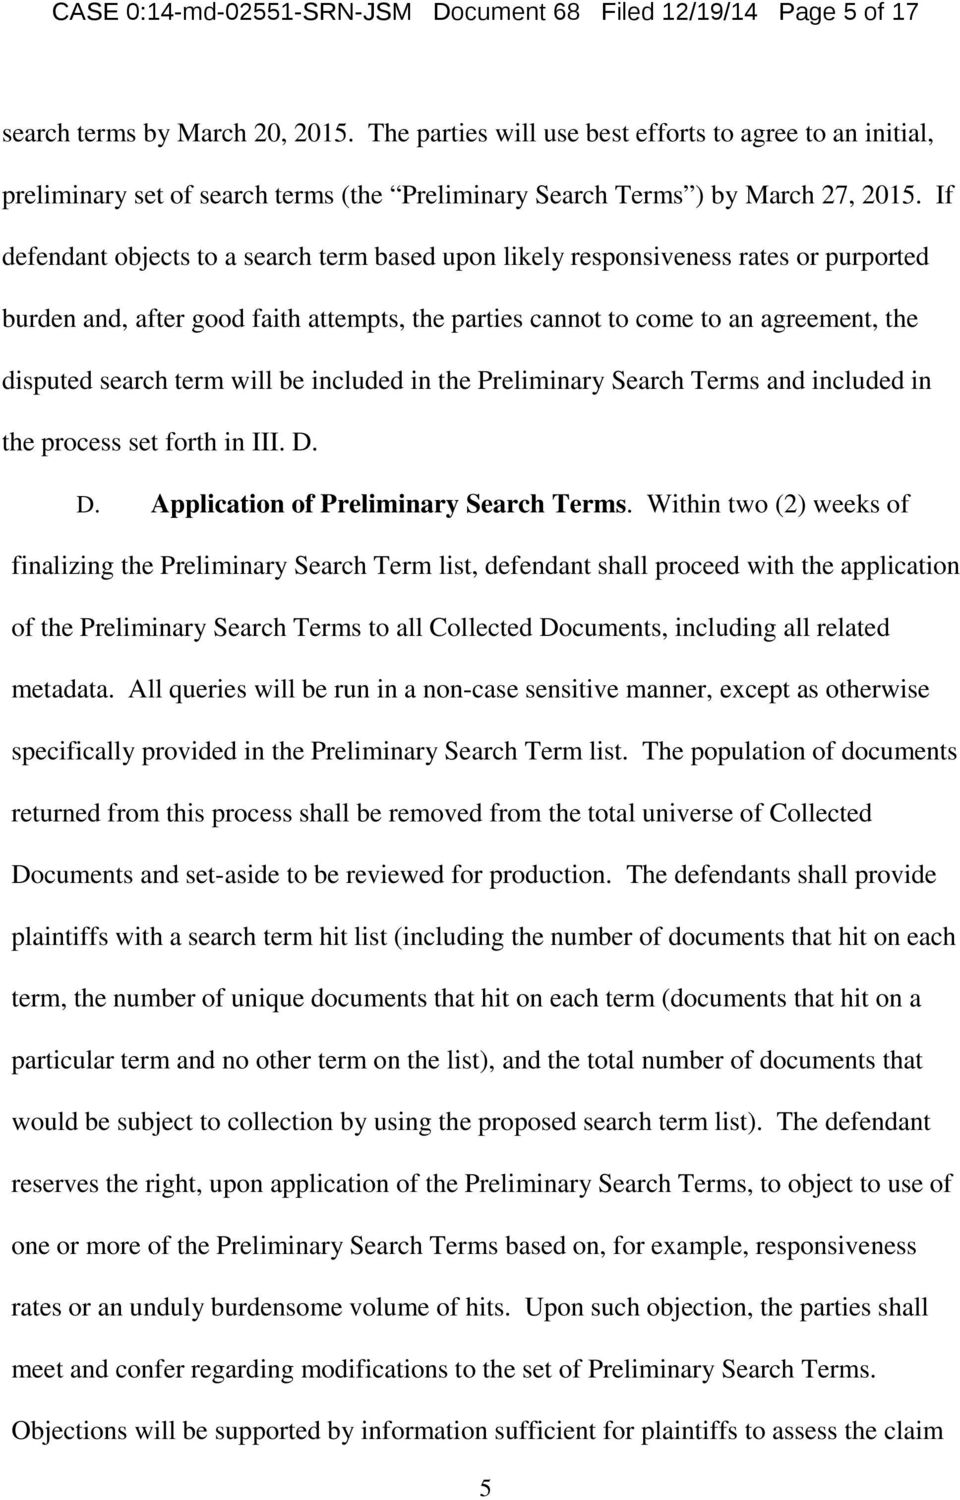 If defendant objects to a search term based upon likely responsiveness rates or purported burden and, after good faith attempts, the parties cannot to come to an agreement, the disputed search term